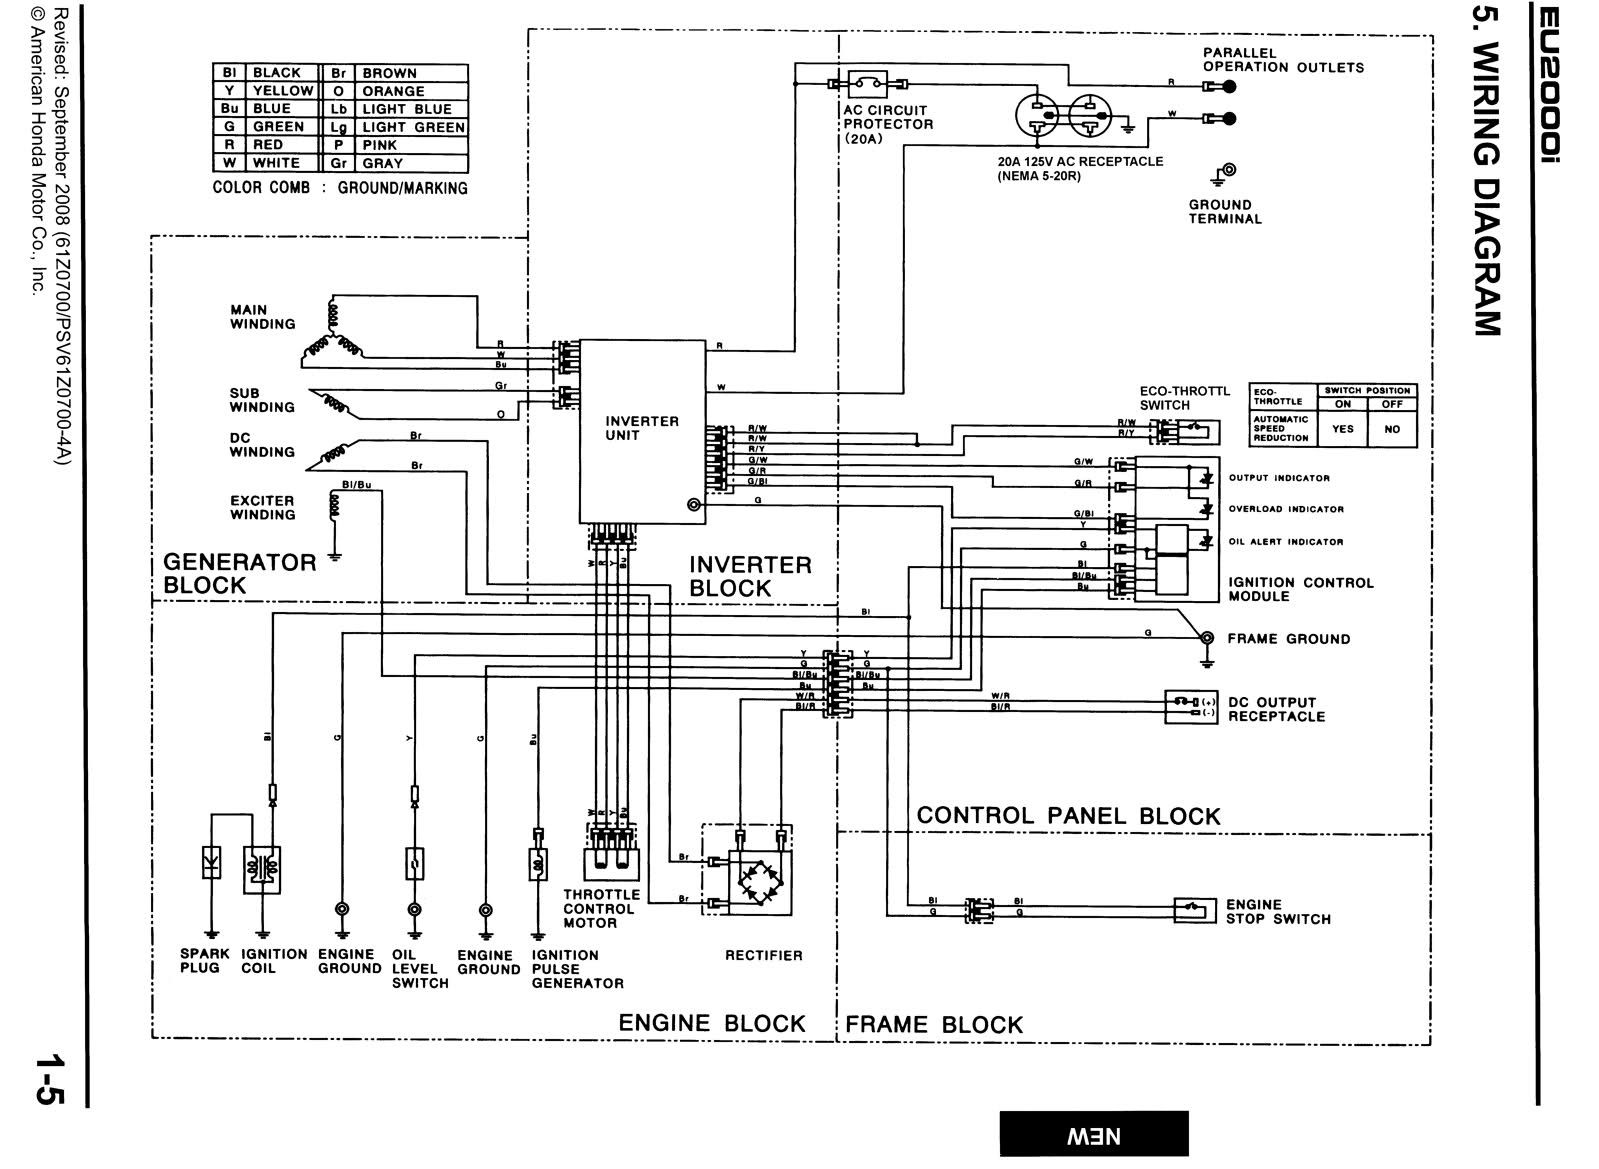 2008 Holiday Rambler Wiring Diagram from i.pinimg.com